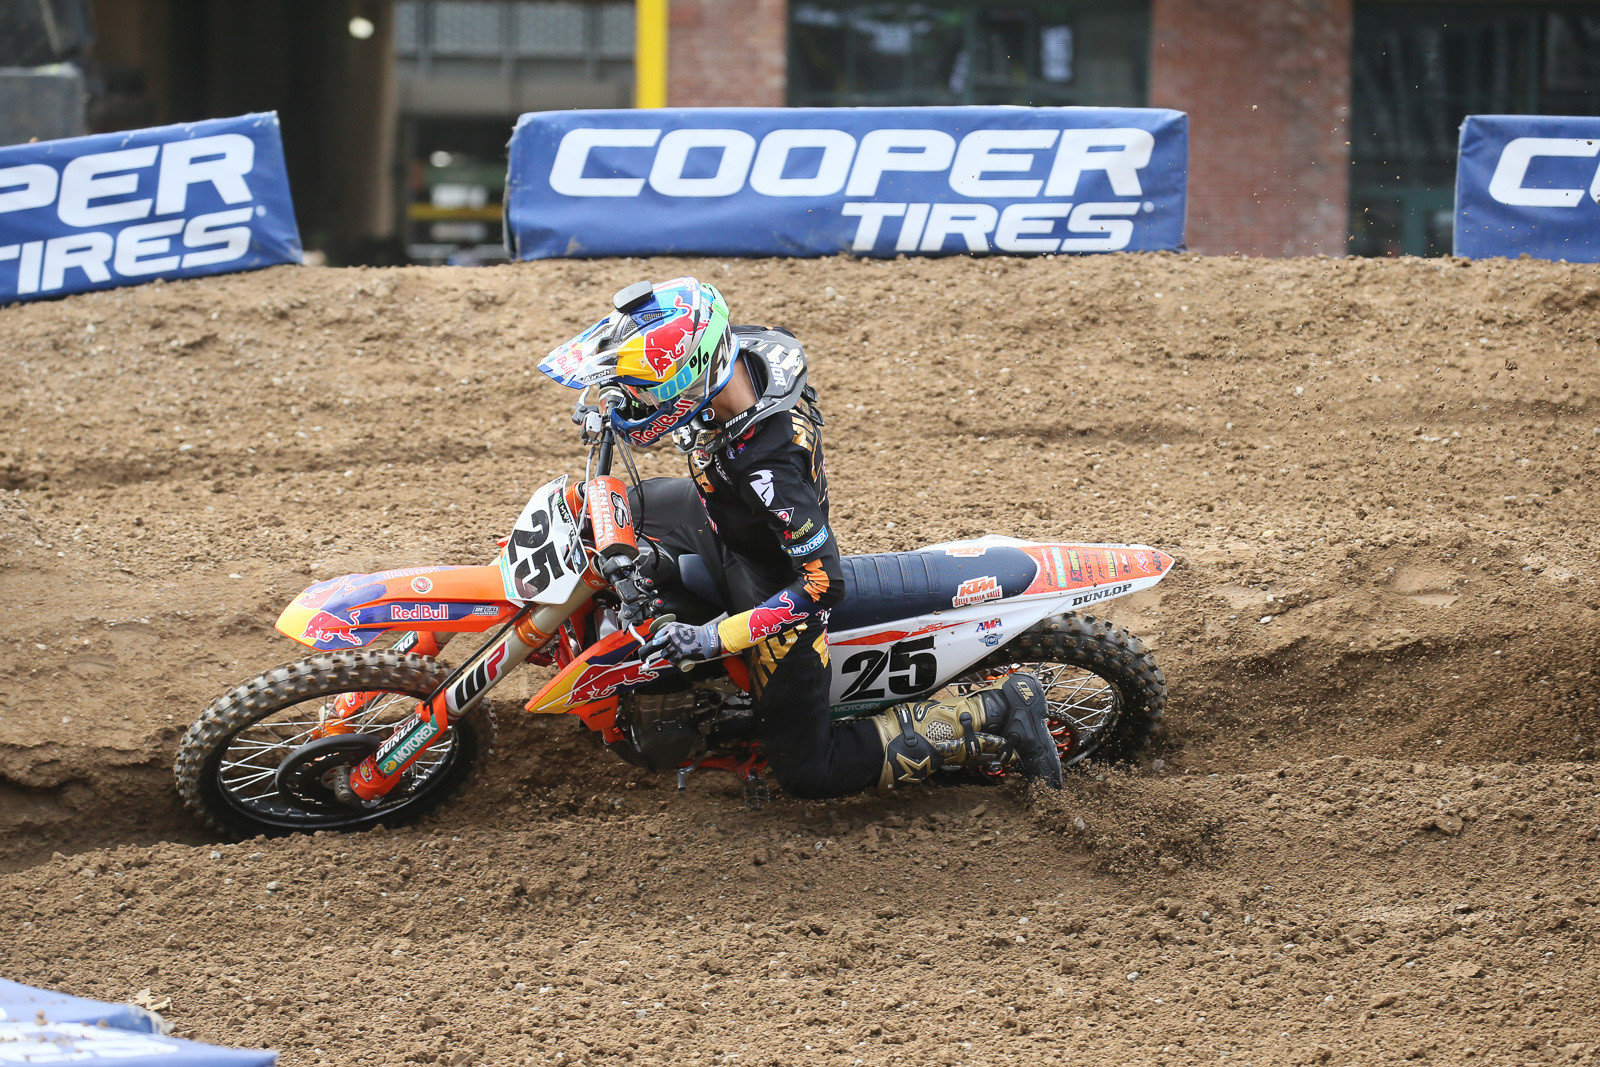 Marvin Musquin's black/gold Thor gear goes well with the LE Alpinestars boots that they debuted this weekend.